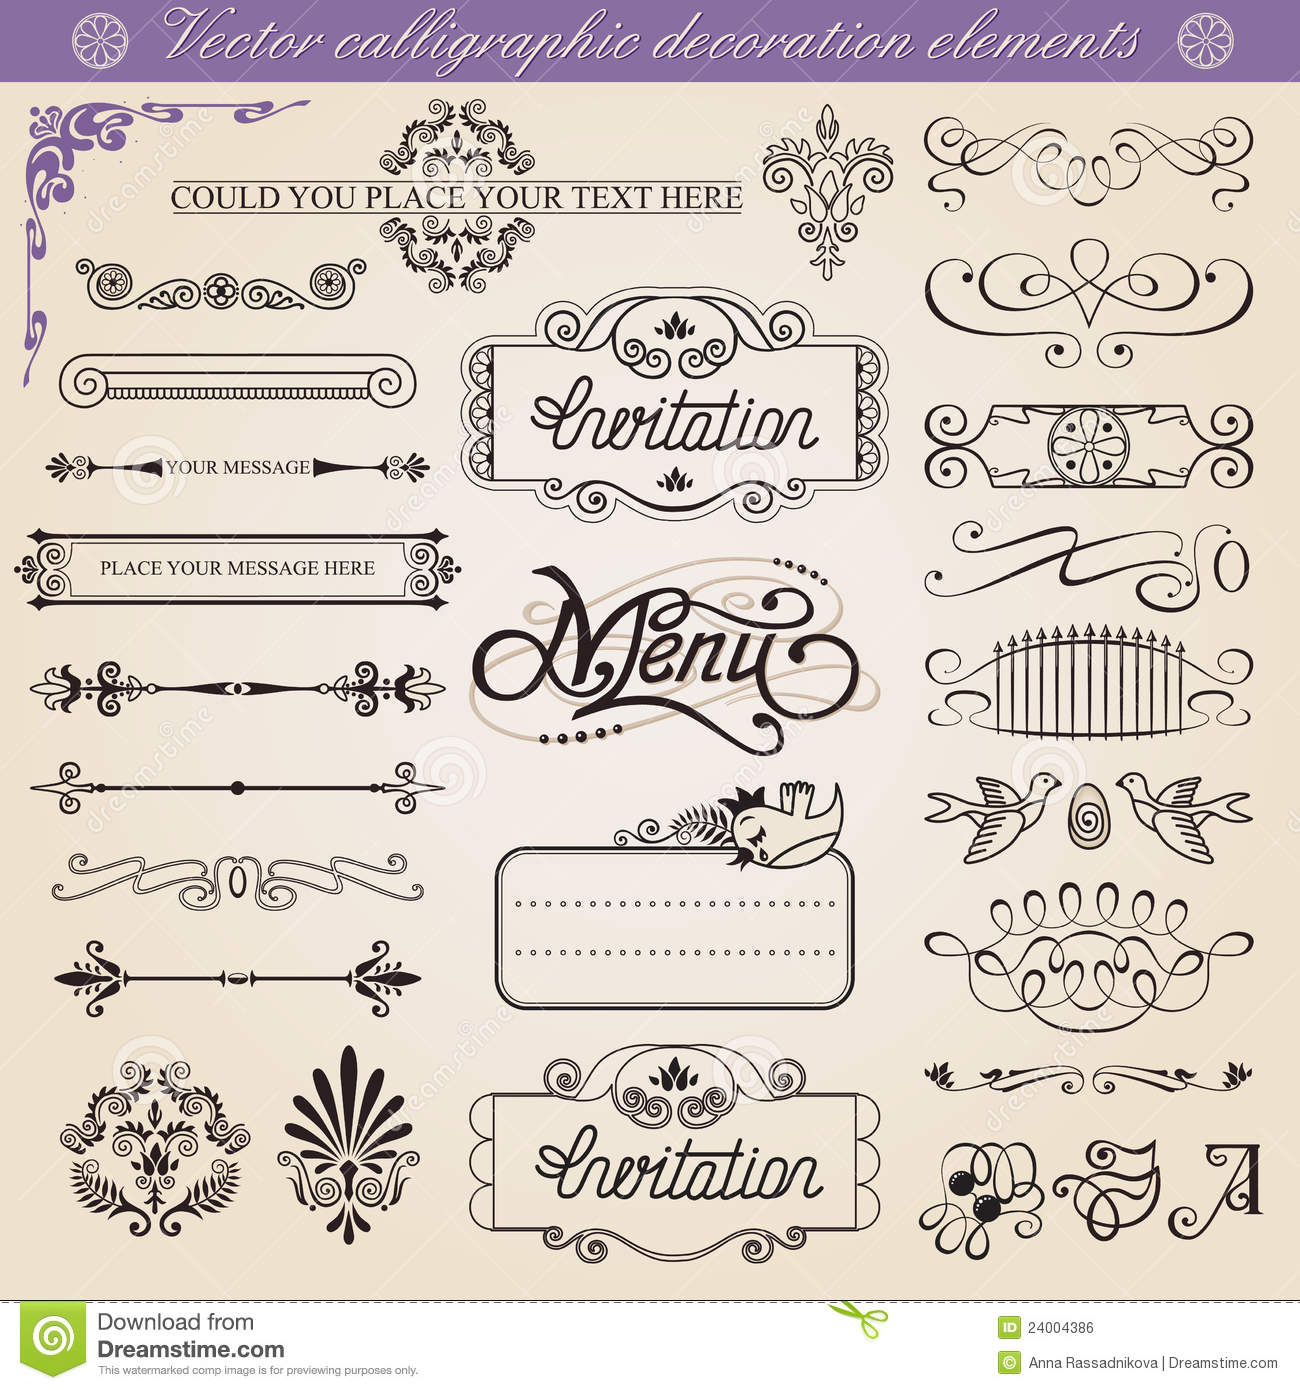 Vector calligraphic decoration elements set royalty free for Decoration elements